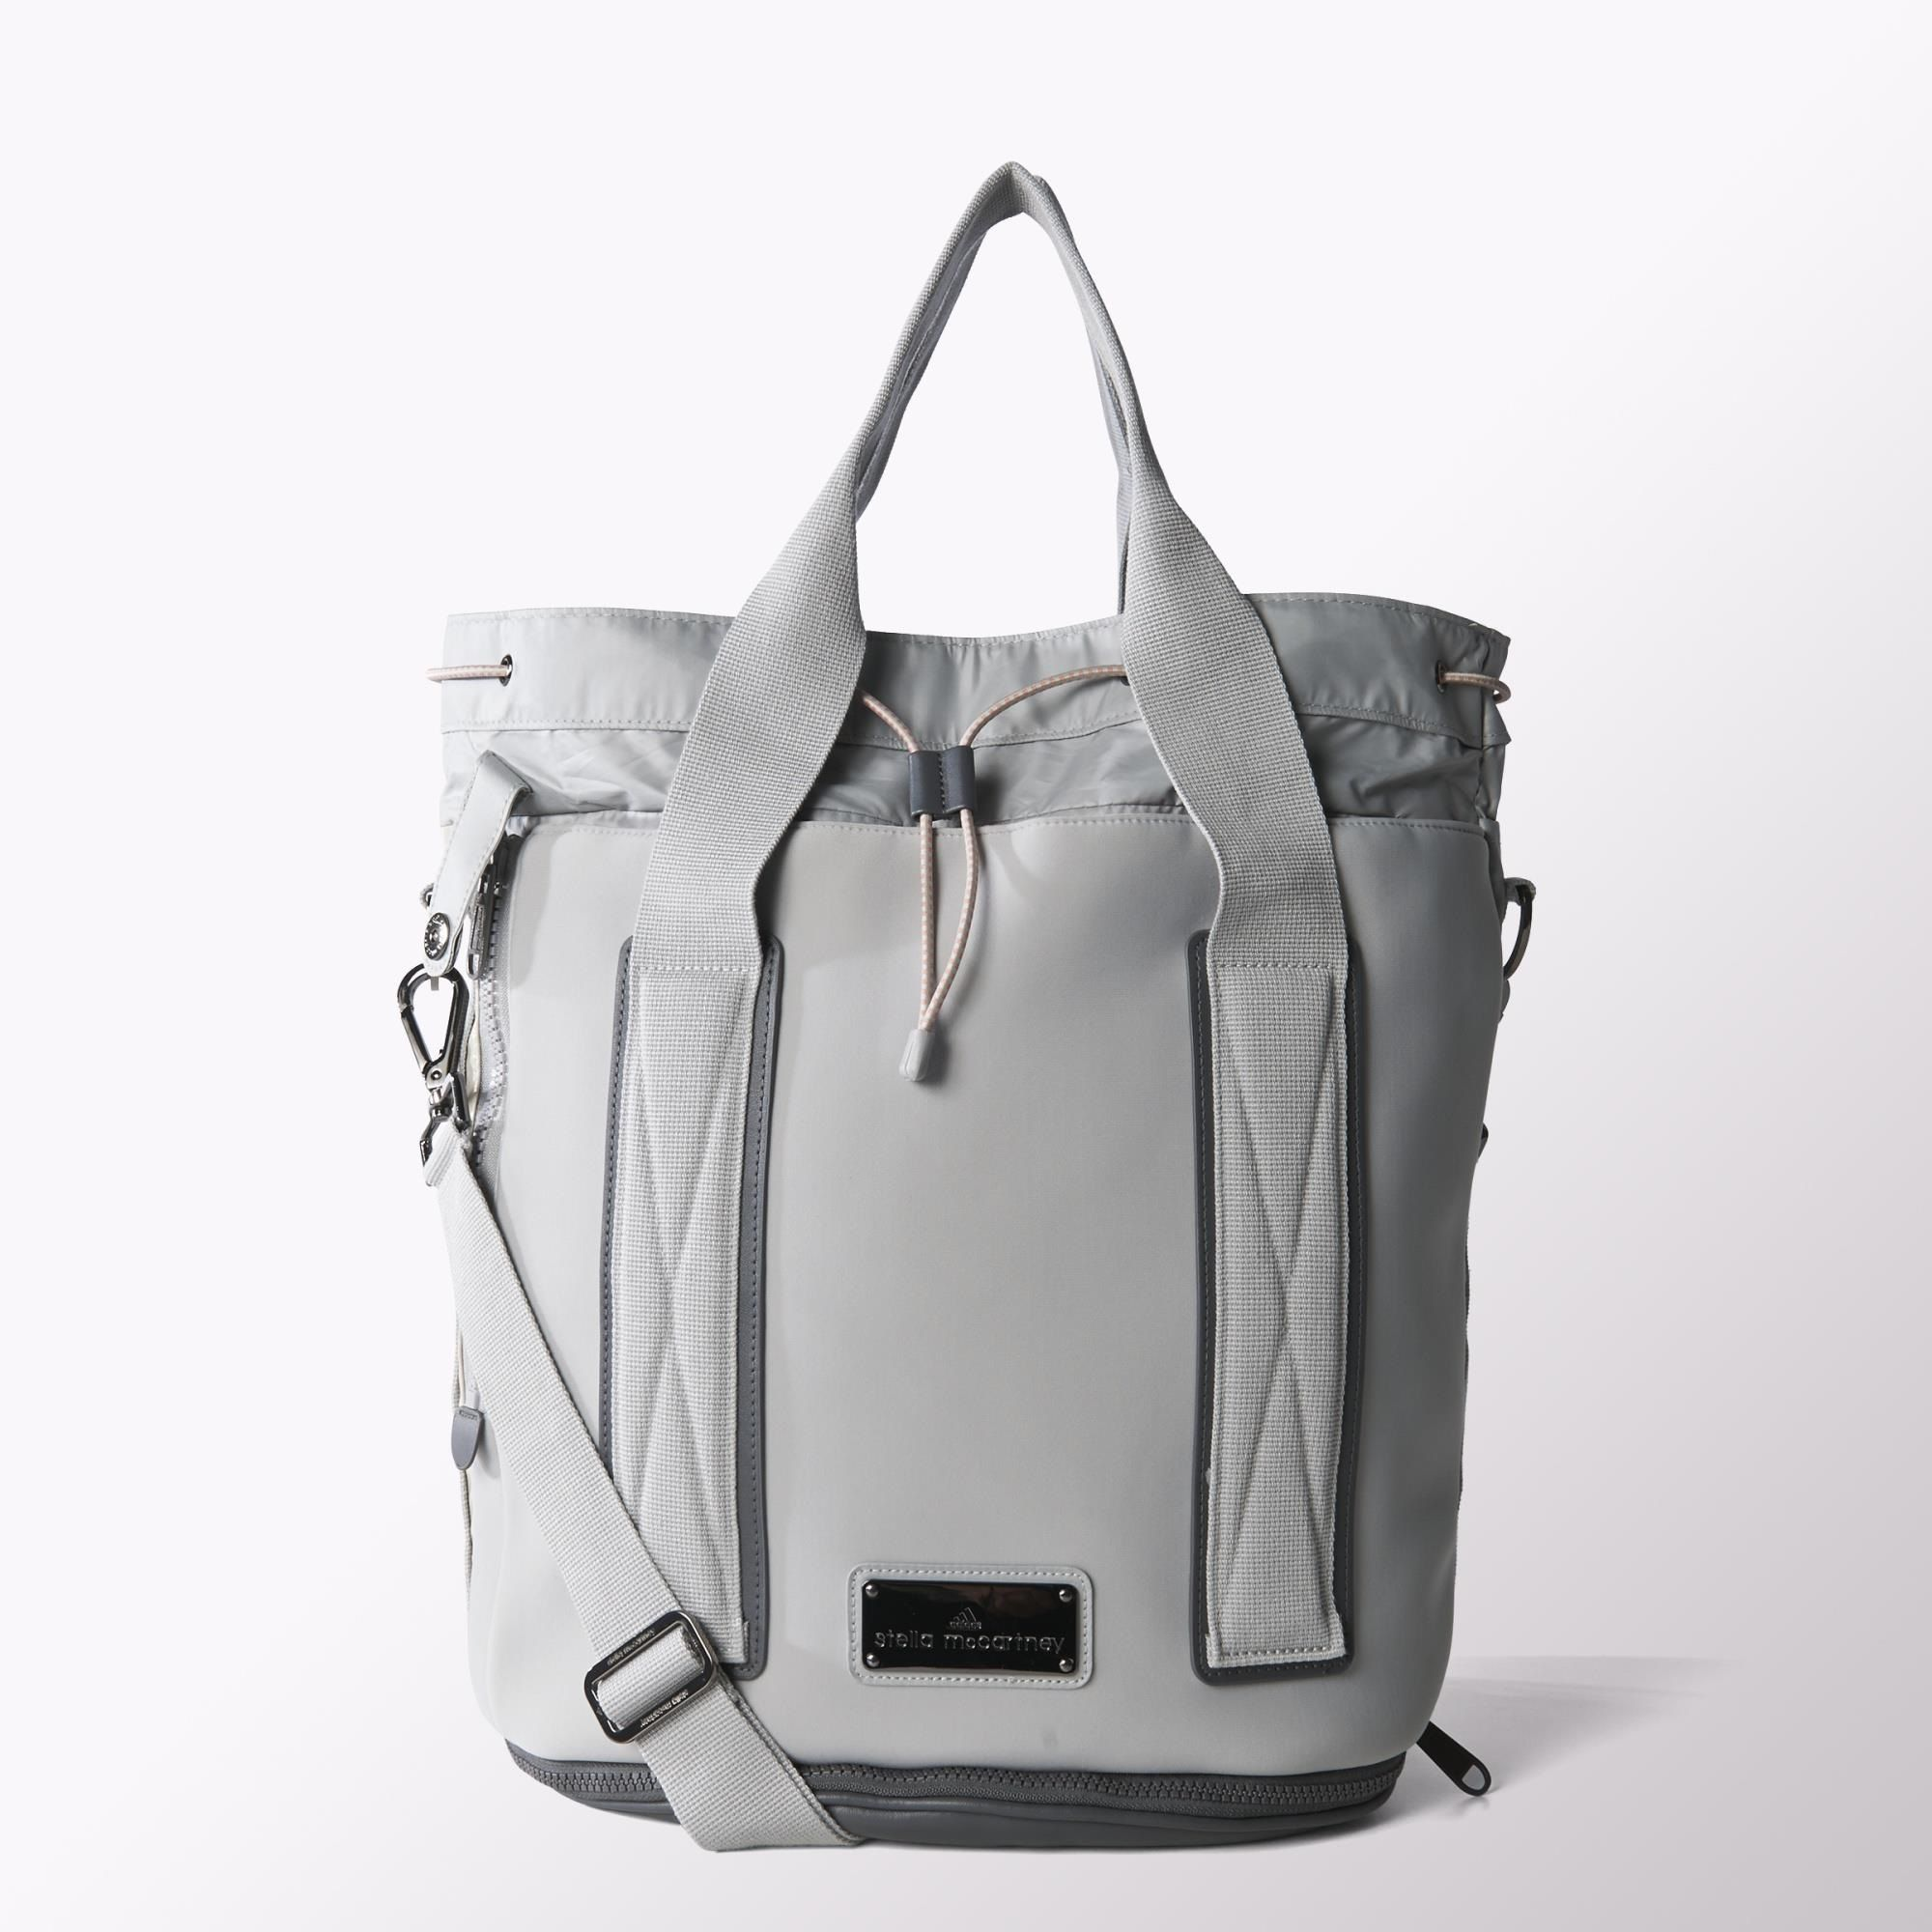 This Expandable Adidas By Stella McCartney Tennis Bag Totes All Your Gear Including